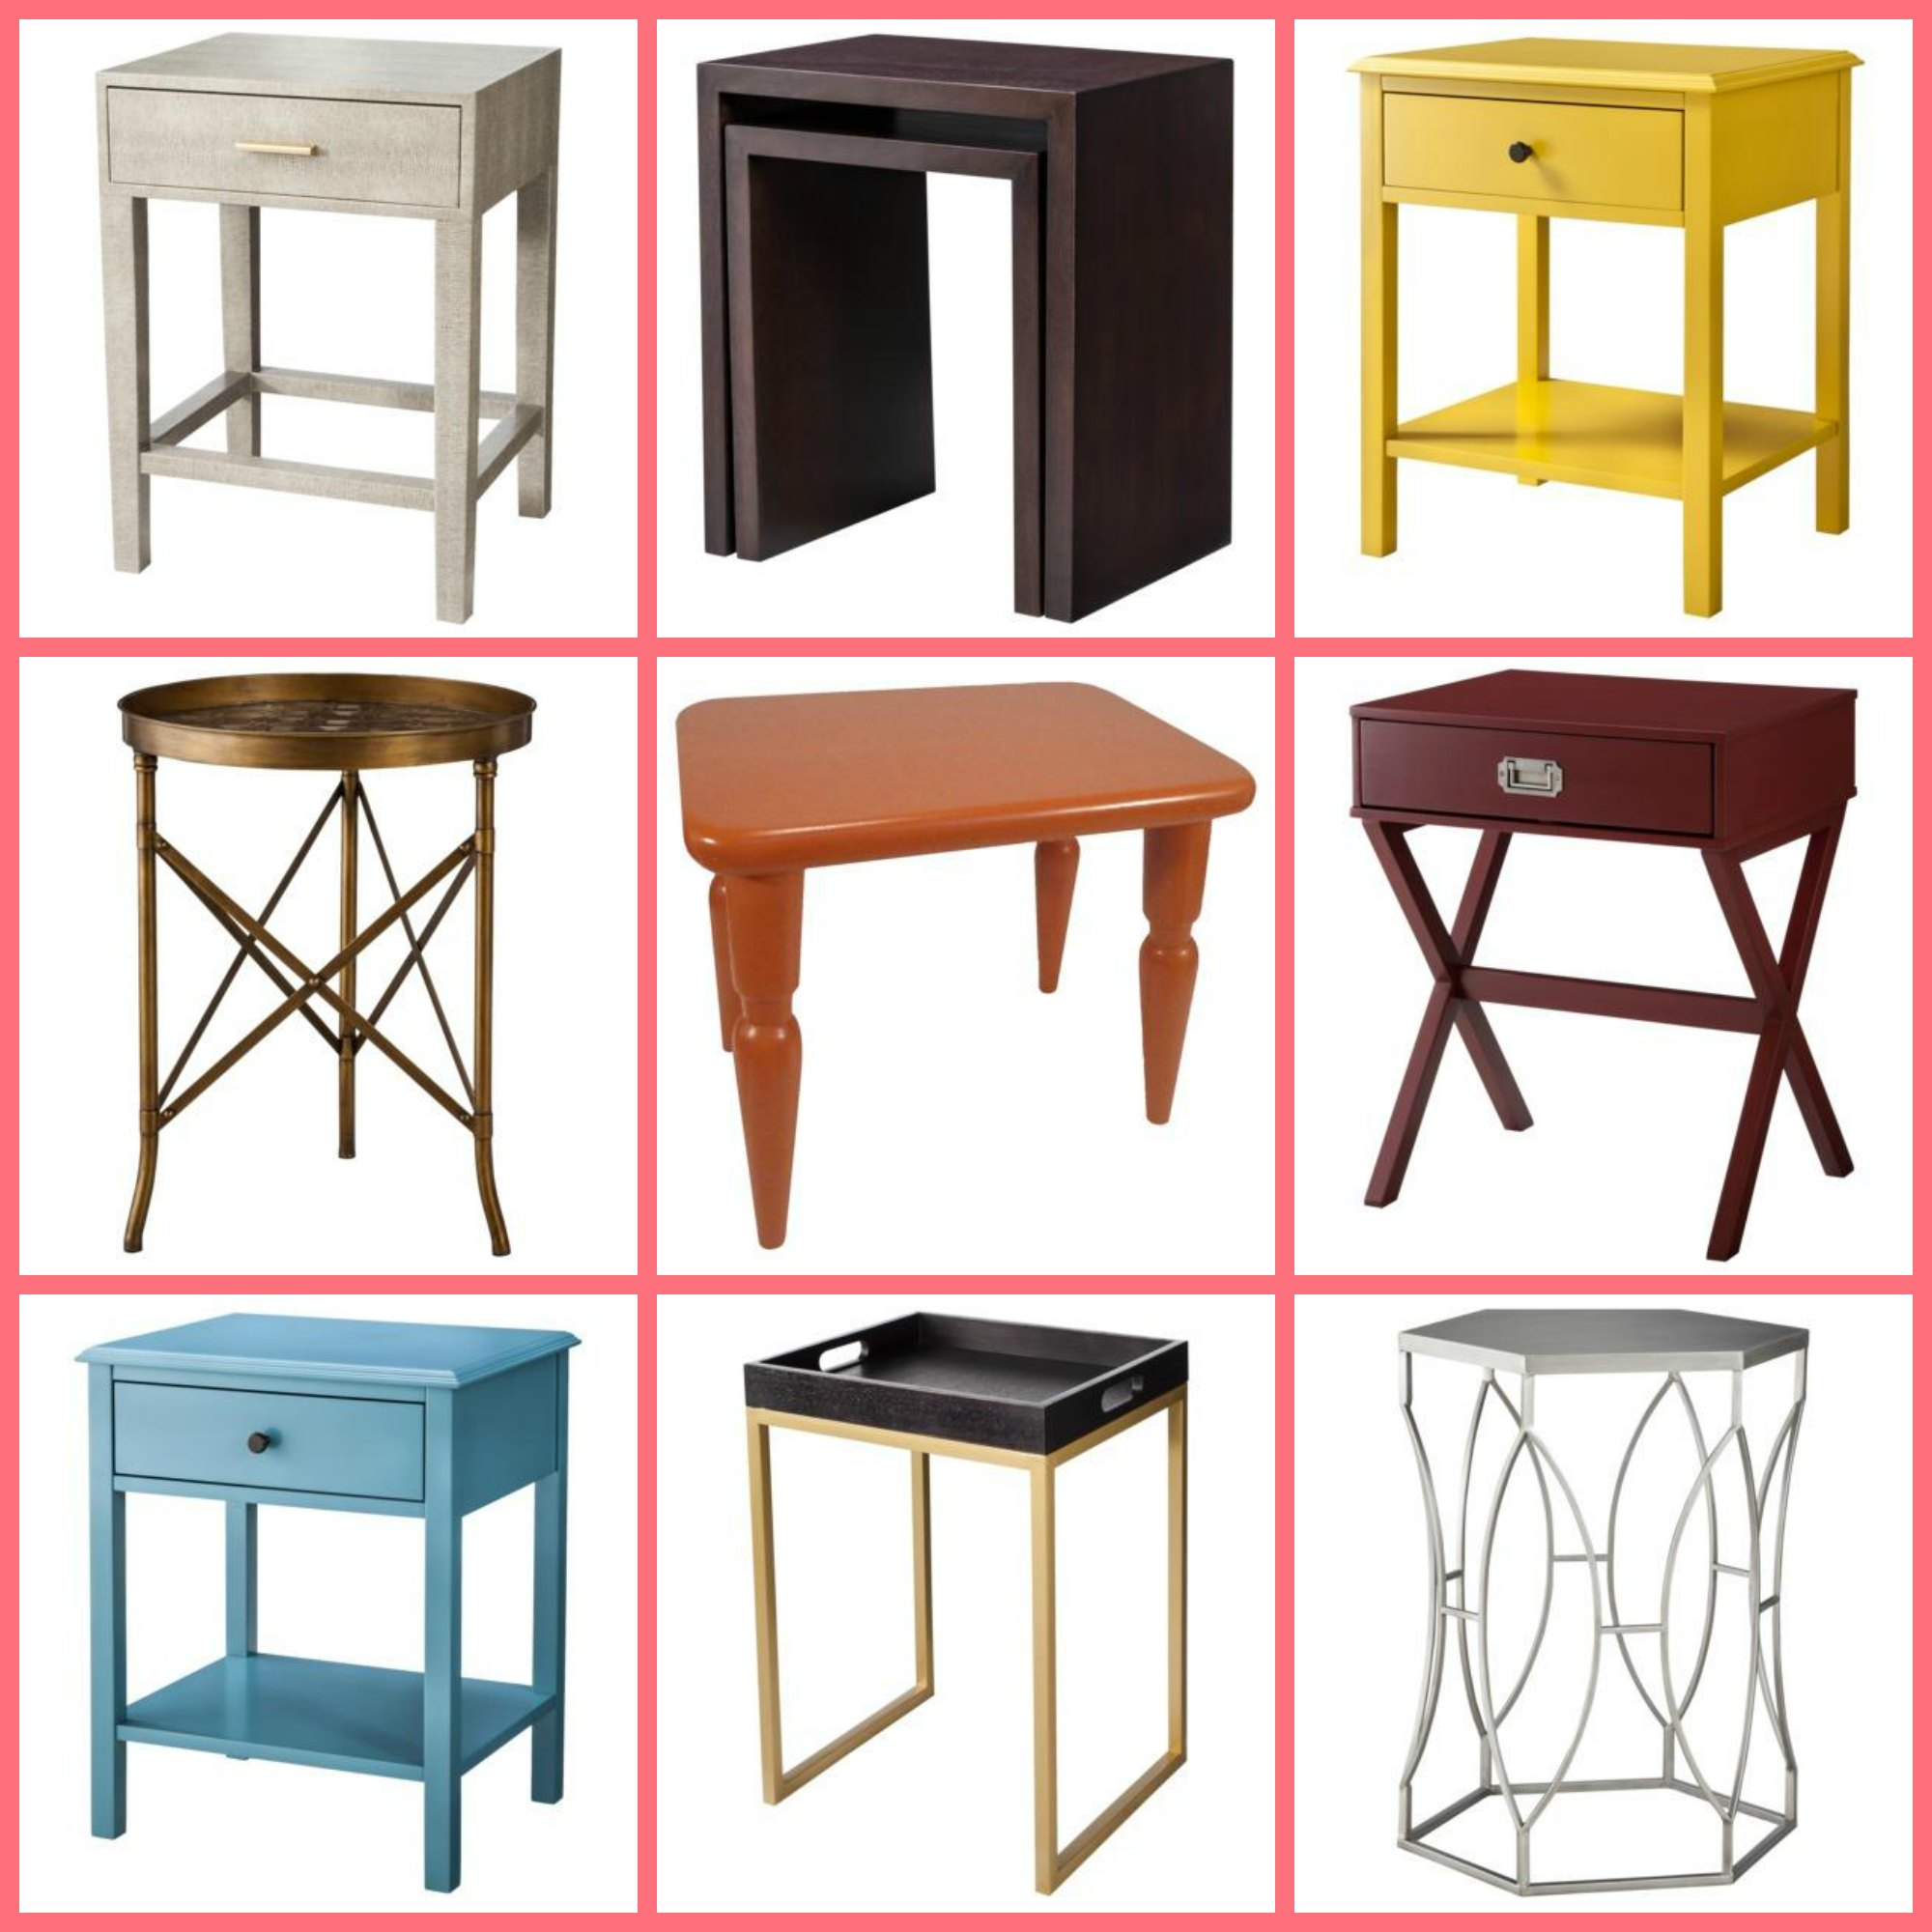 TARGET THRESHOLD ACCENT TABLES: CLOCKWISE FROM TOP LEFT: 1. FAUX SNAKESKIN ACCENT  TABLE , 2. NESTING TABLES 3. WINDHAM SIDE TABLE YELLOW , 4.